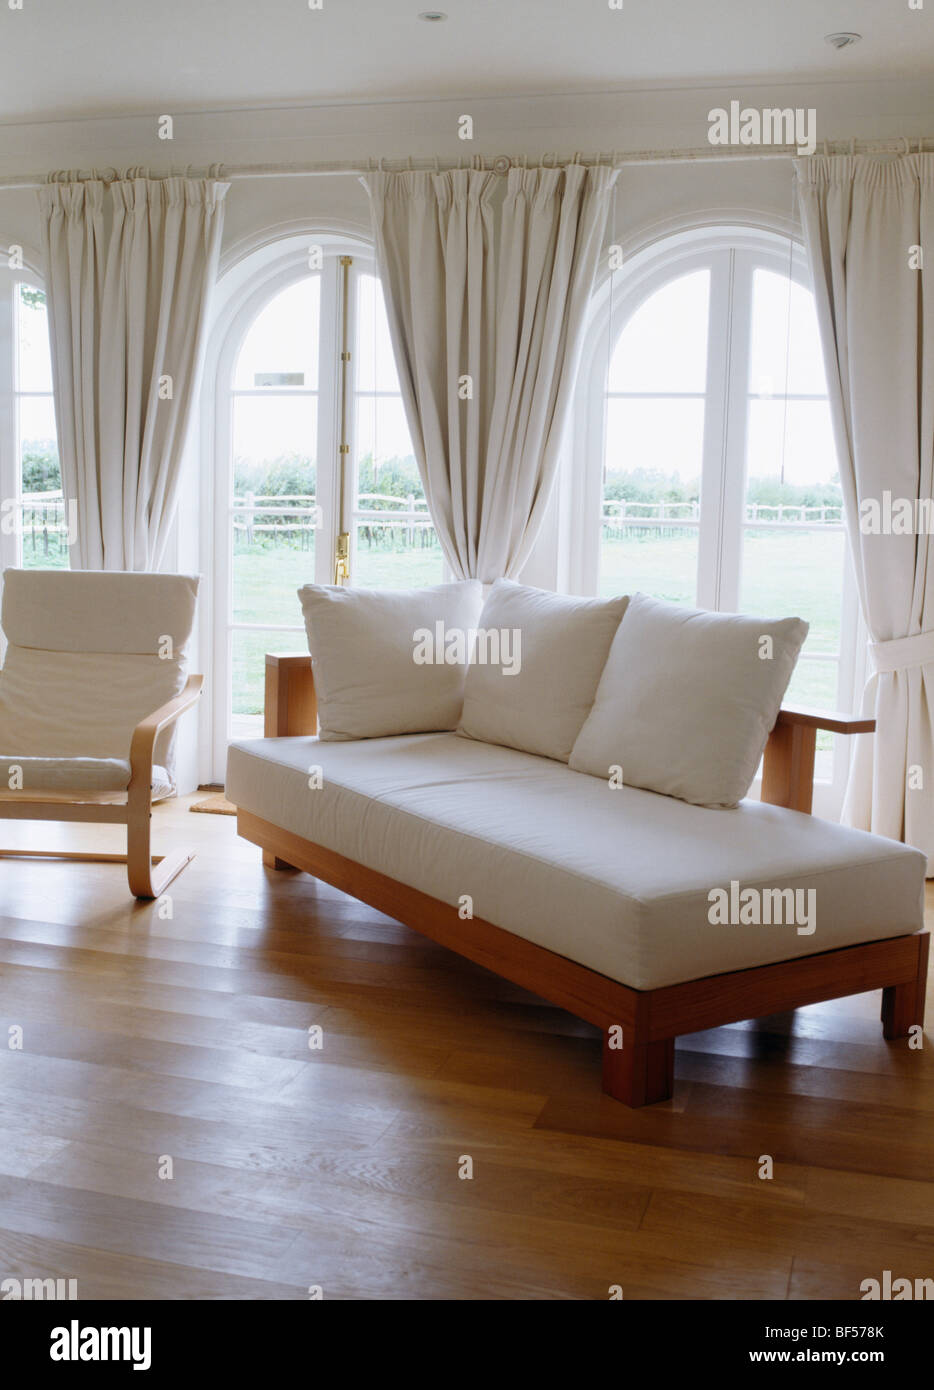 Day Bed With White Cushions In Living Room Wooden Floor And Curtains At French Windows